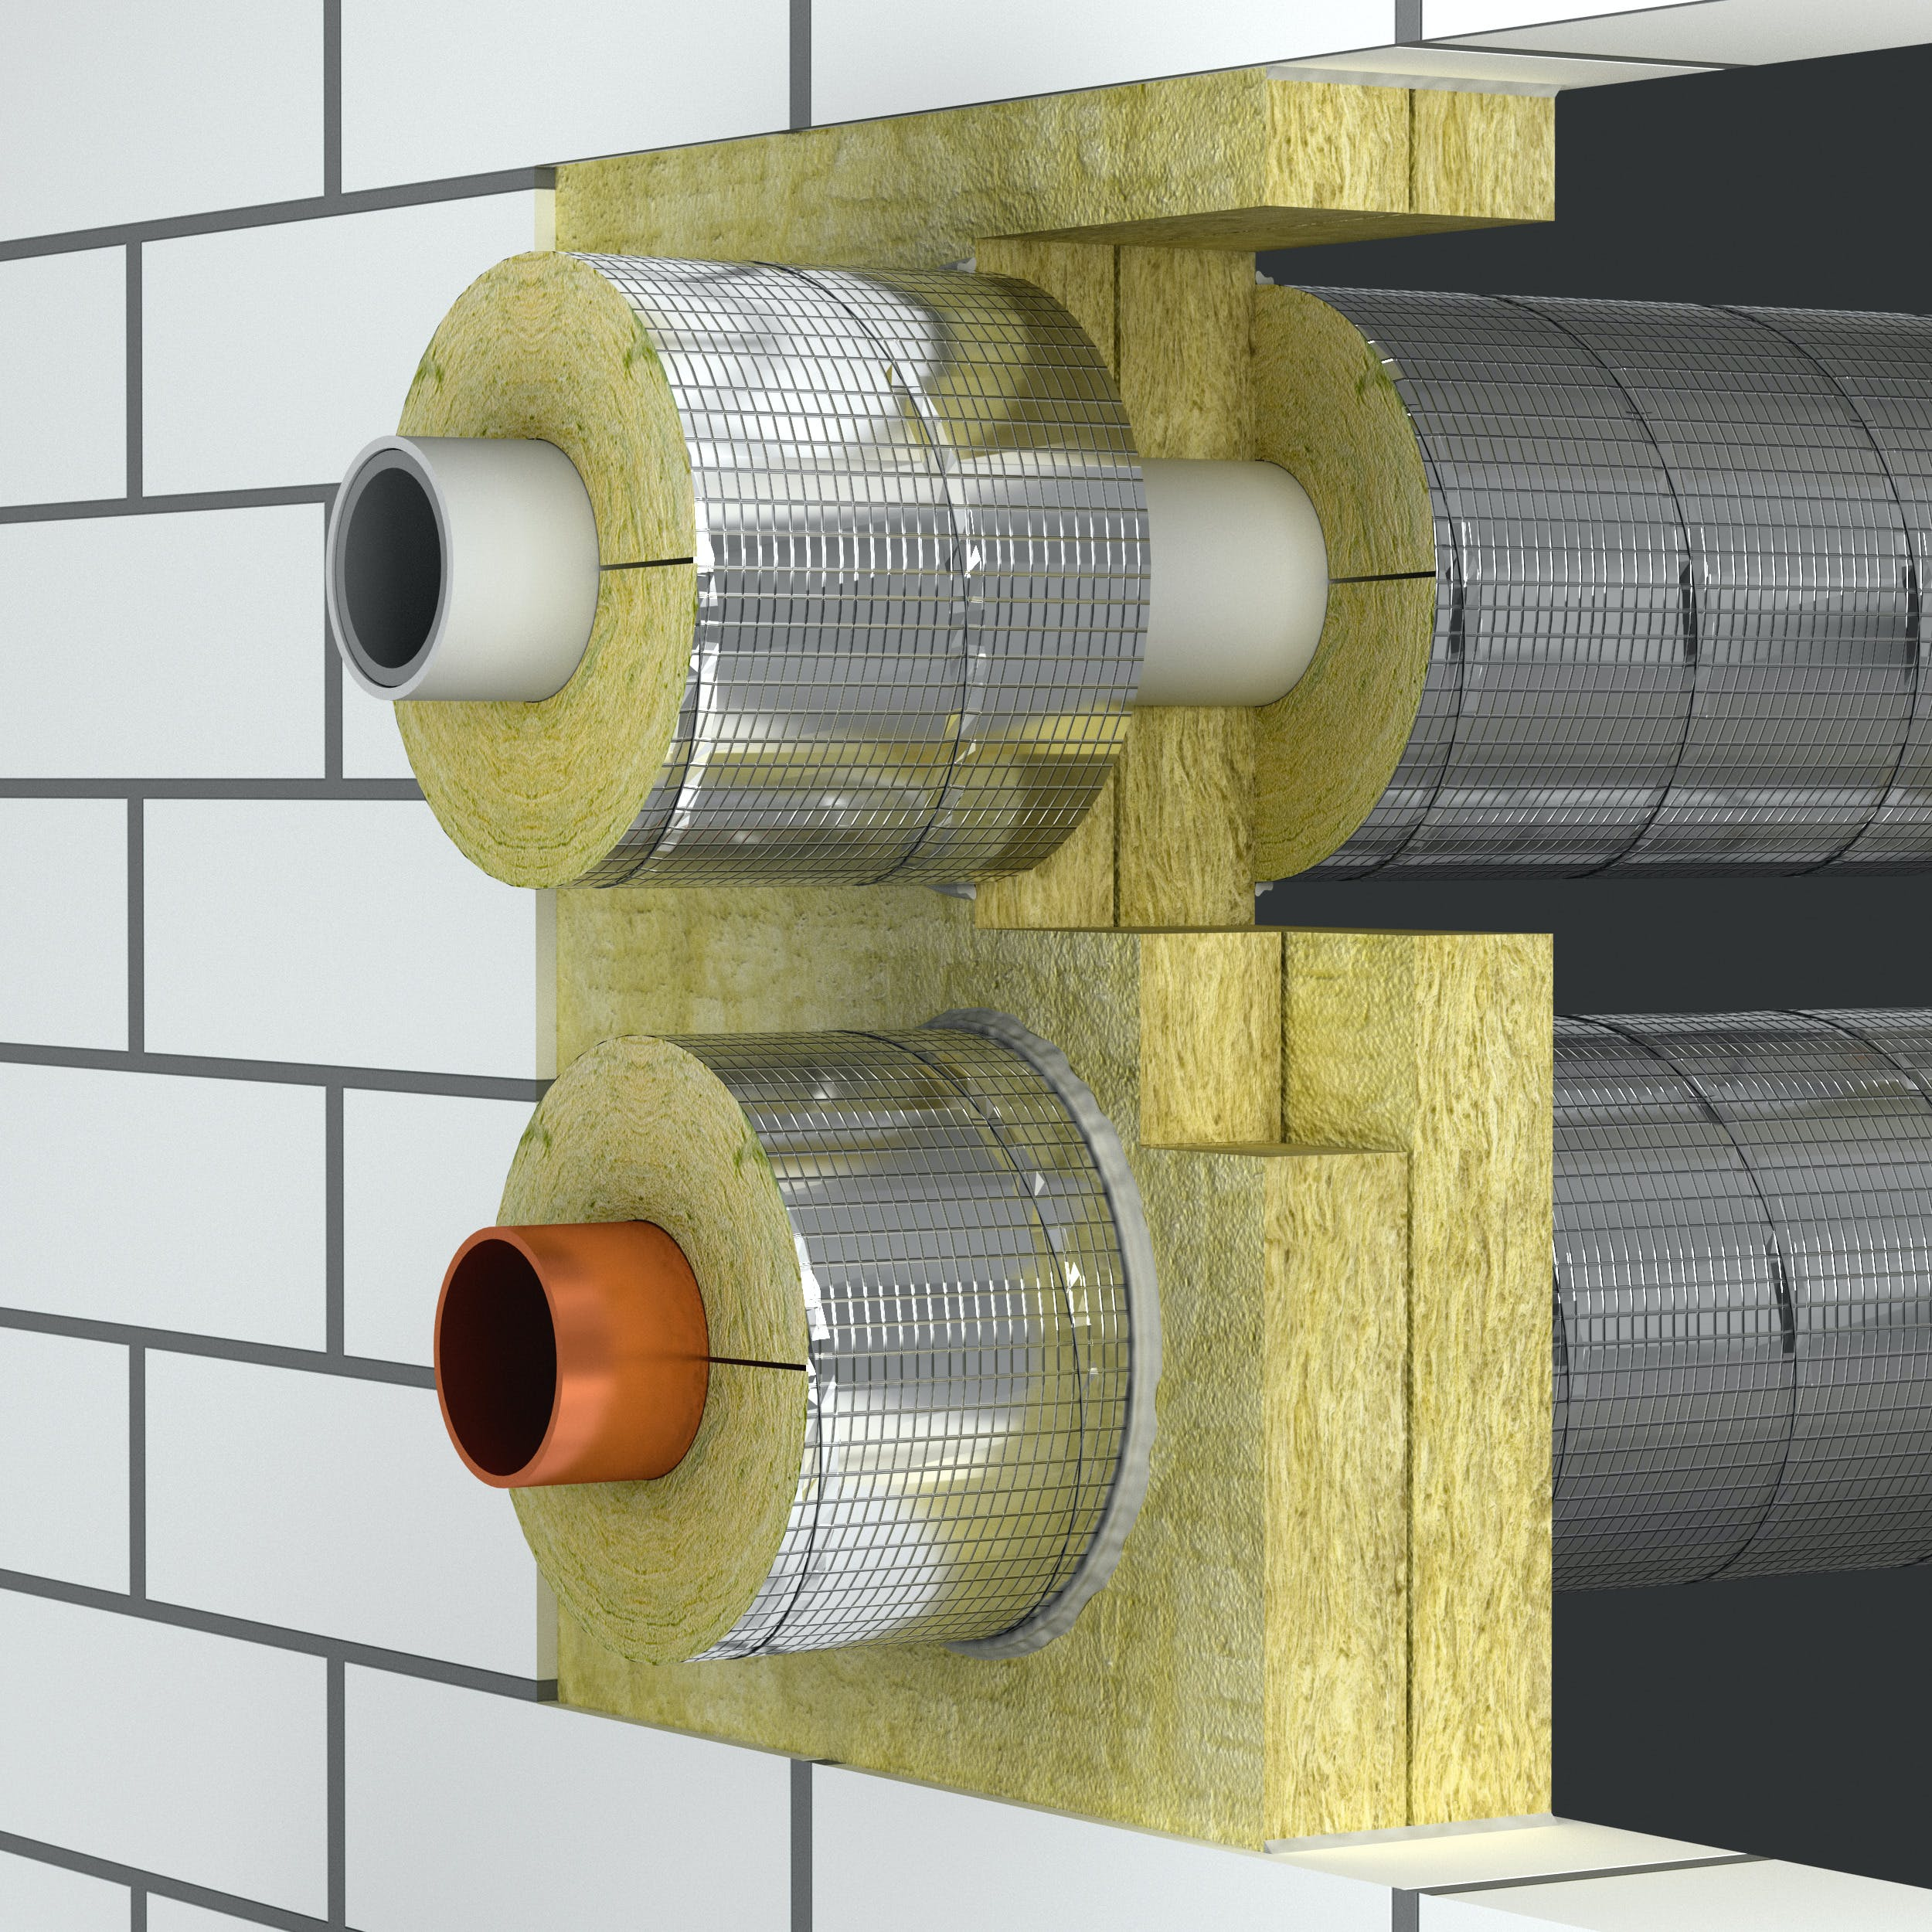 fire penetration of pipes